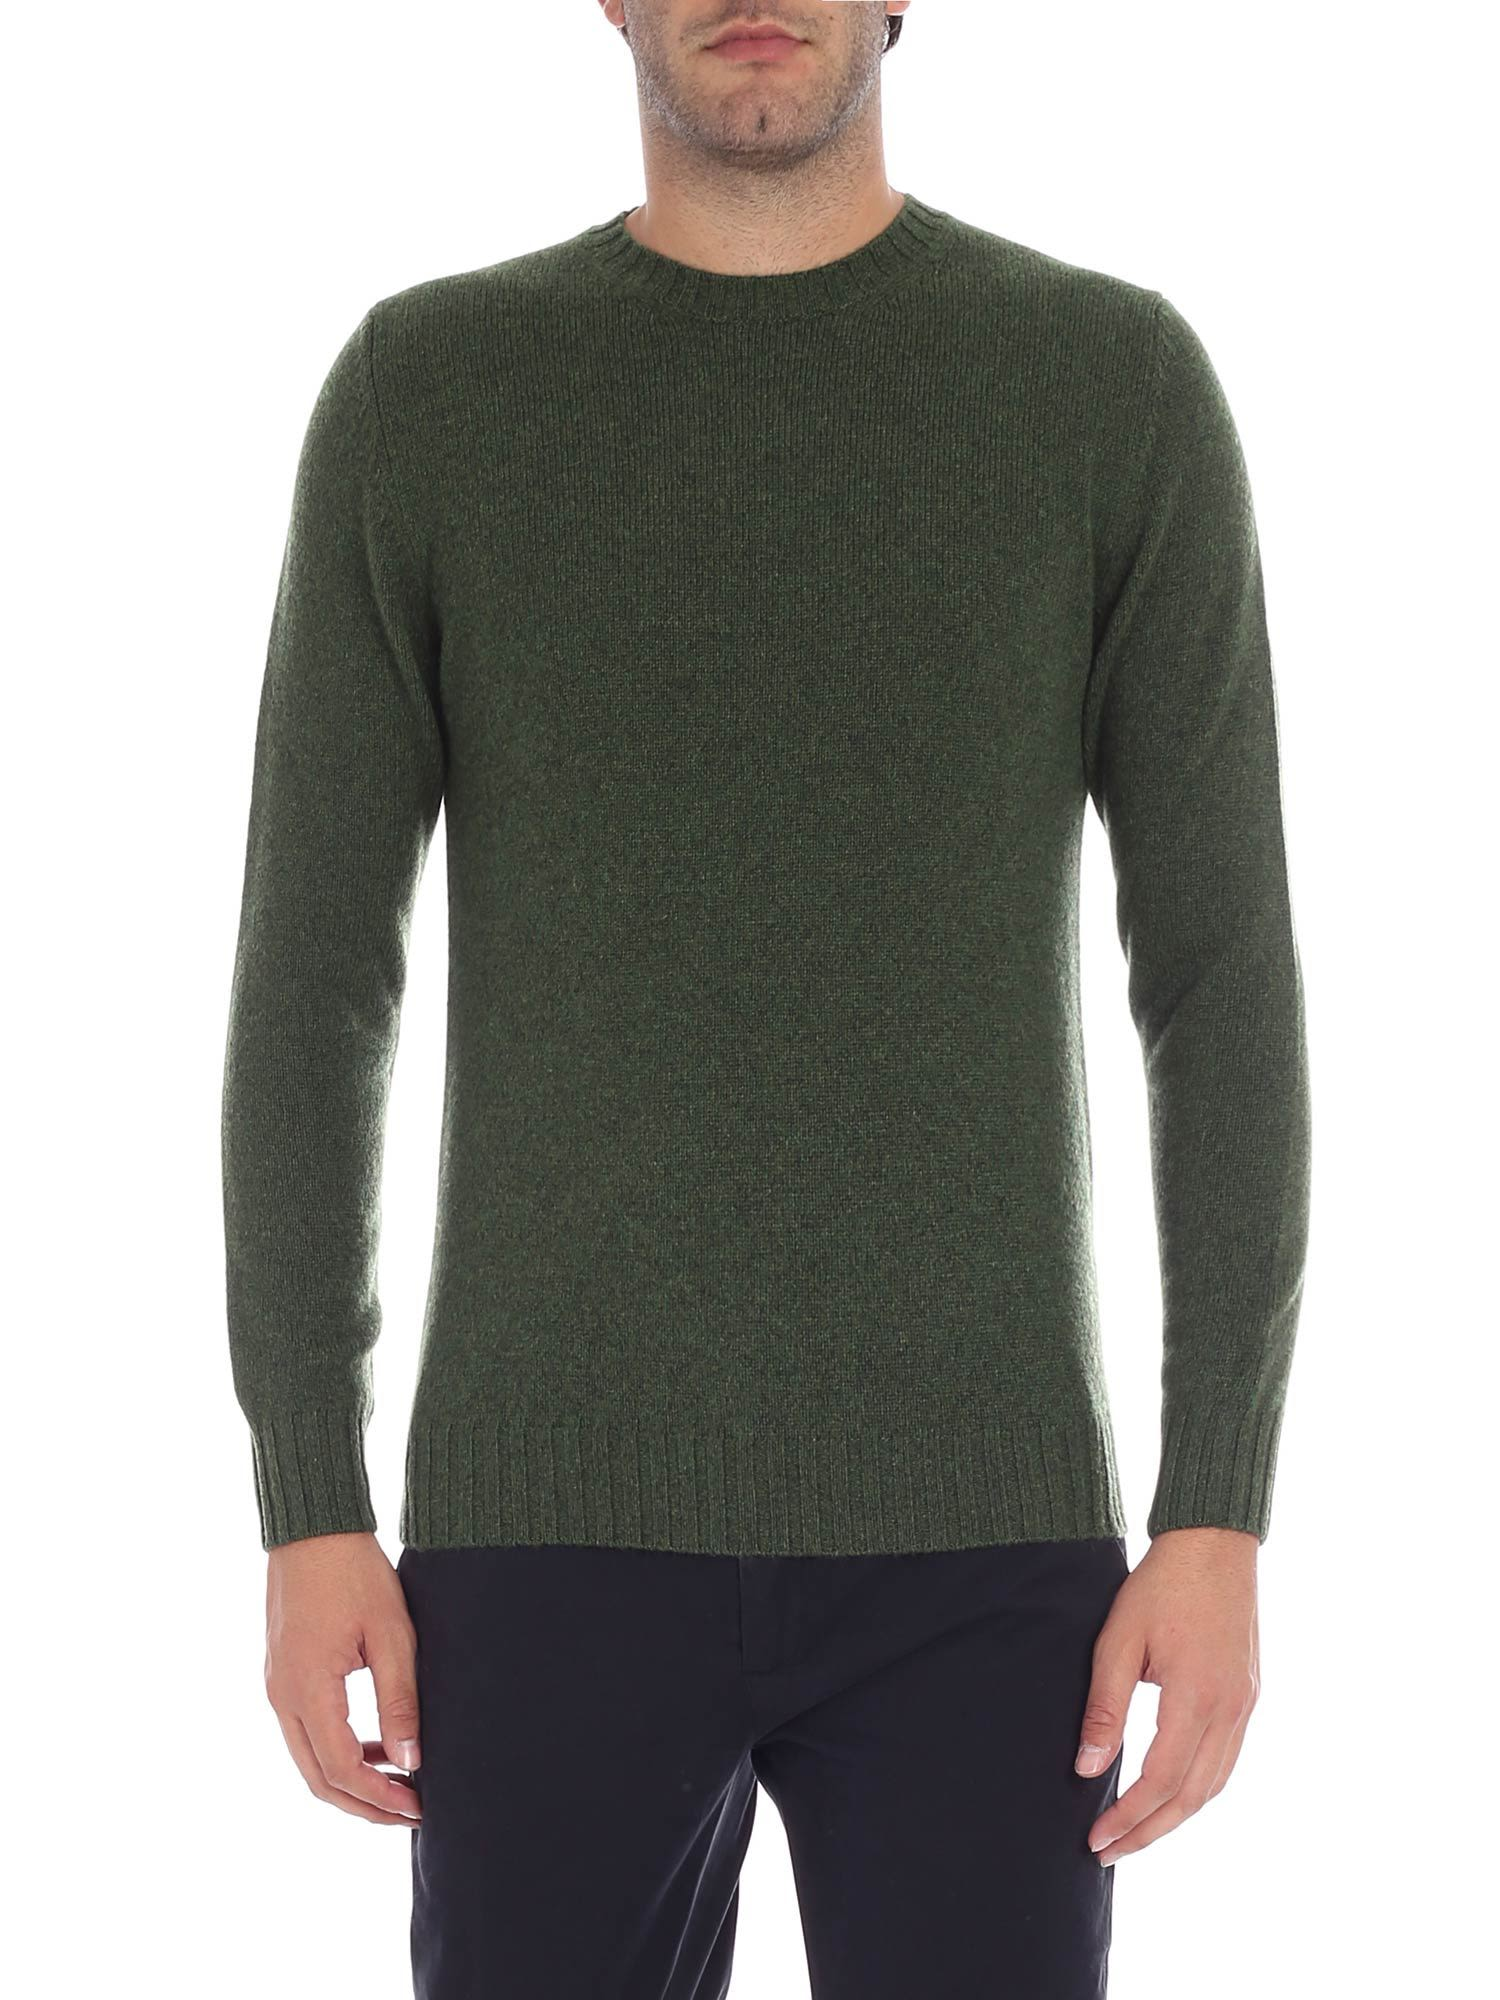 LUIGI BORRELLI Round Neck Sweater in Green